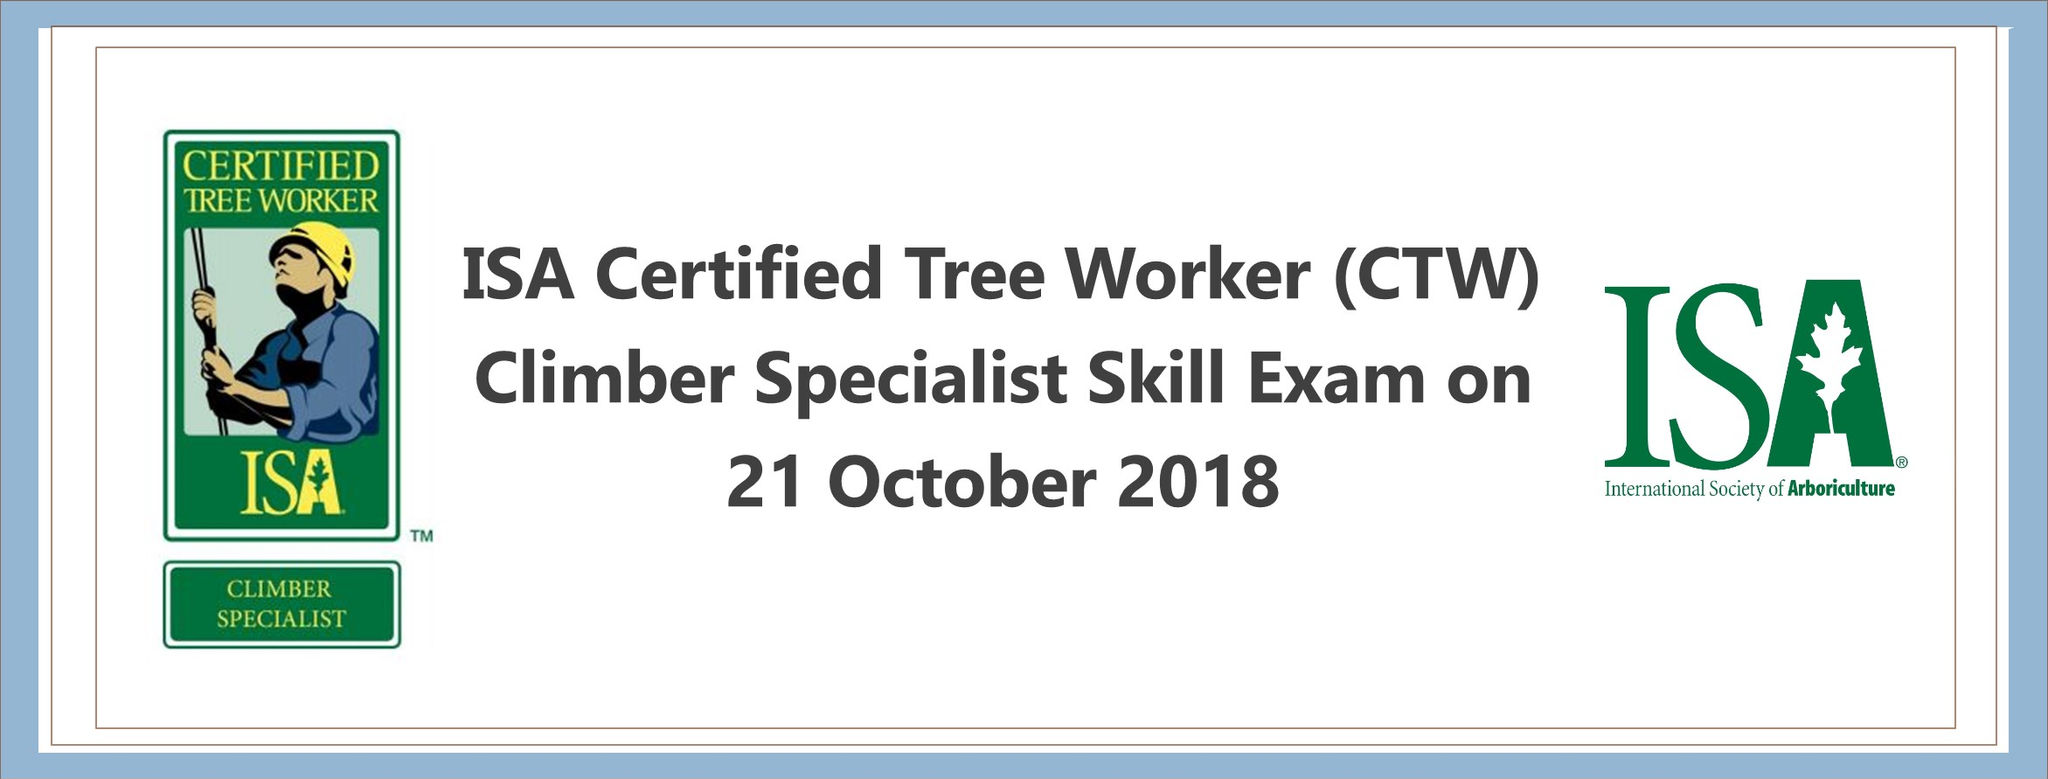 Isa Certified Tree Worker Ctw Climber Specialist Skills Exam On 21